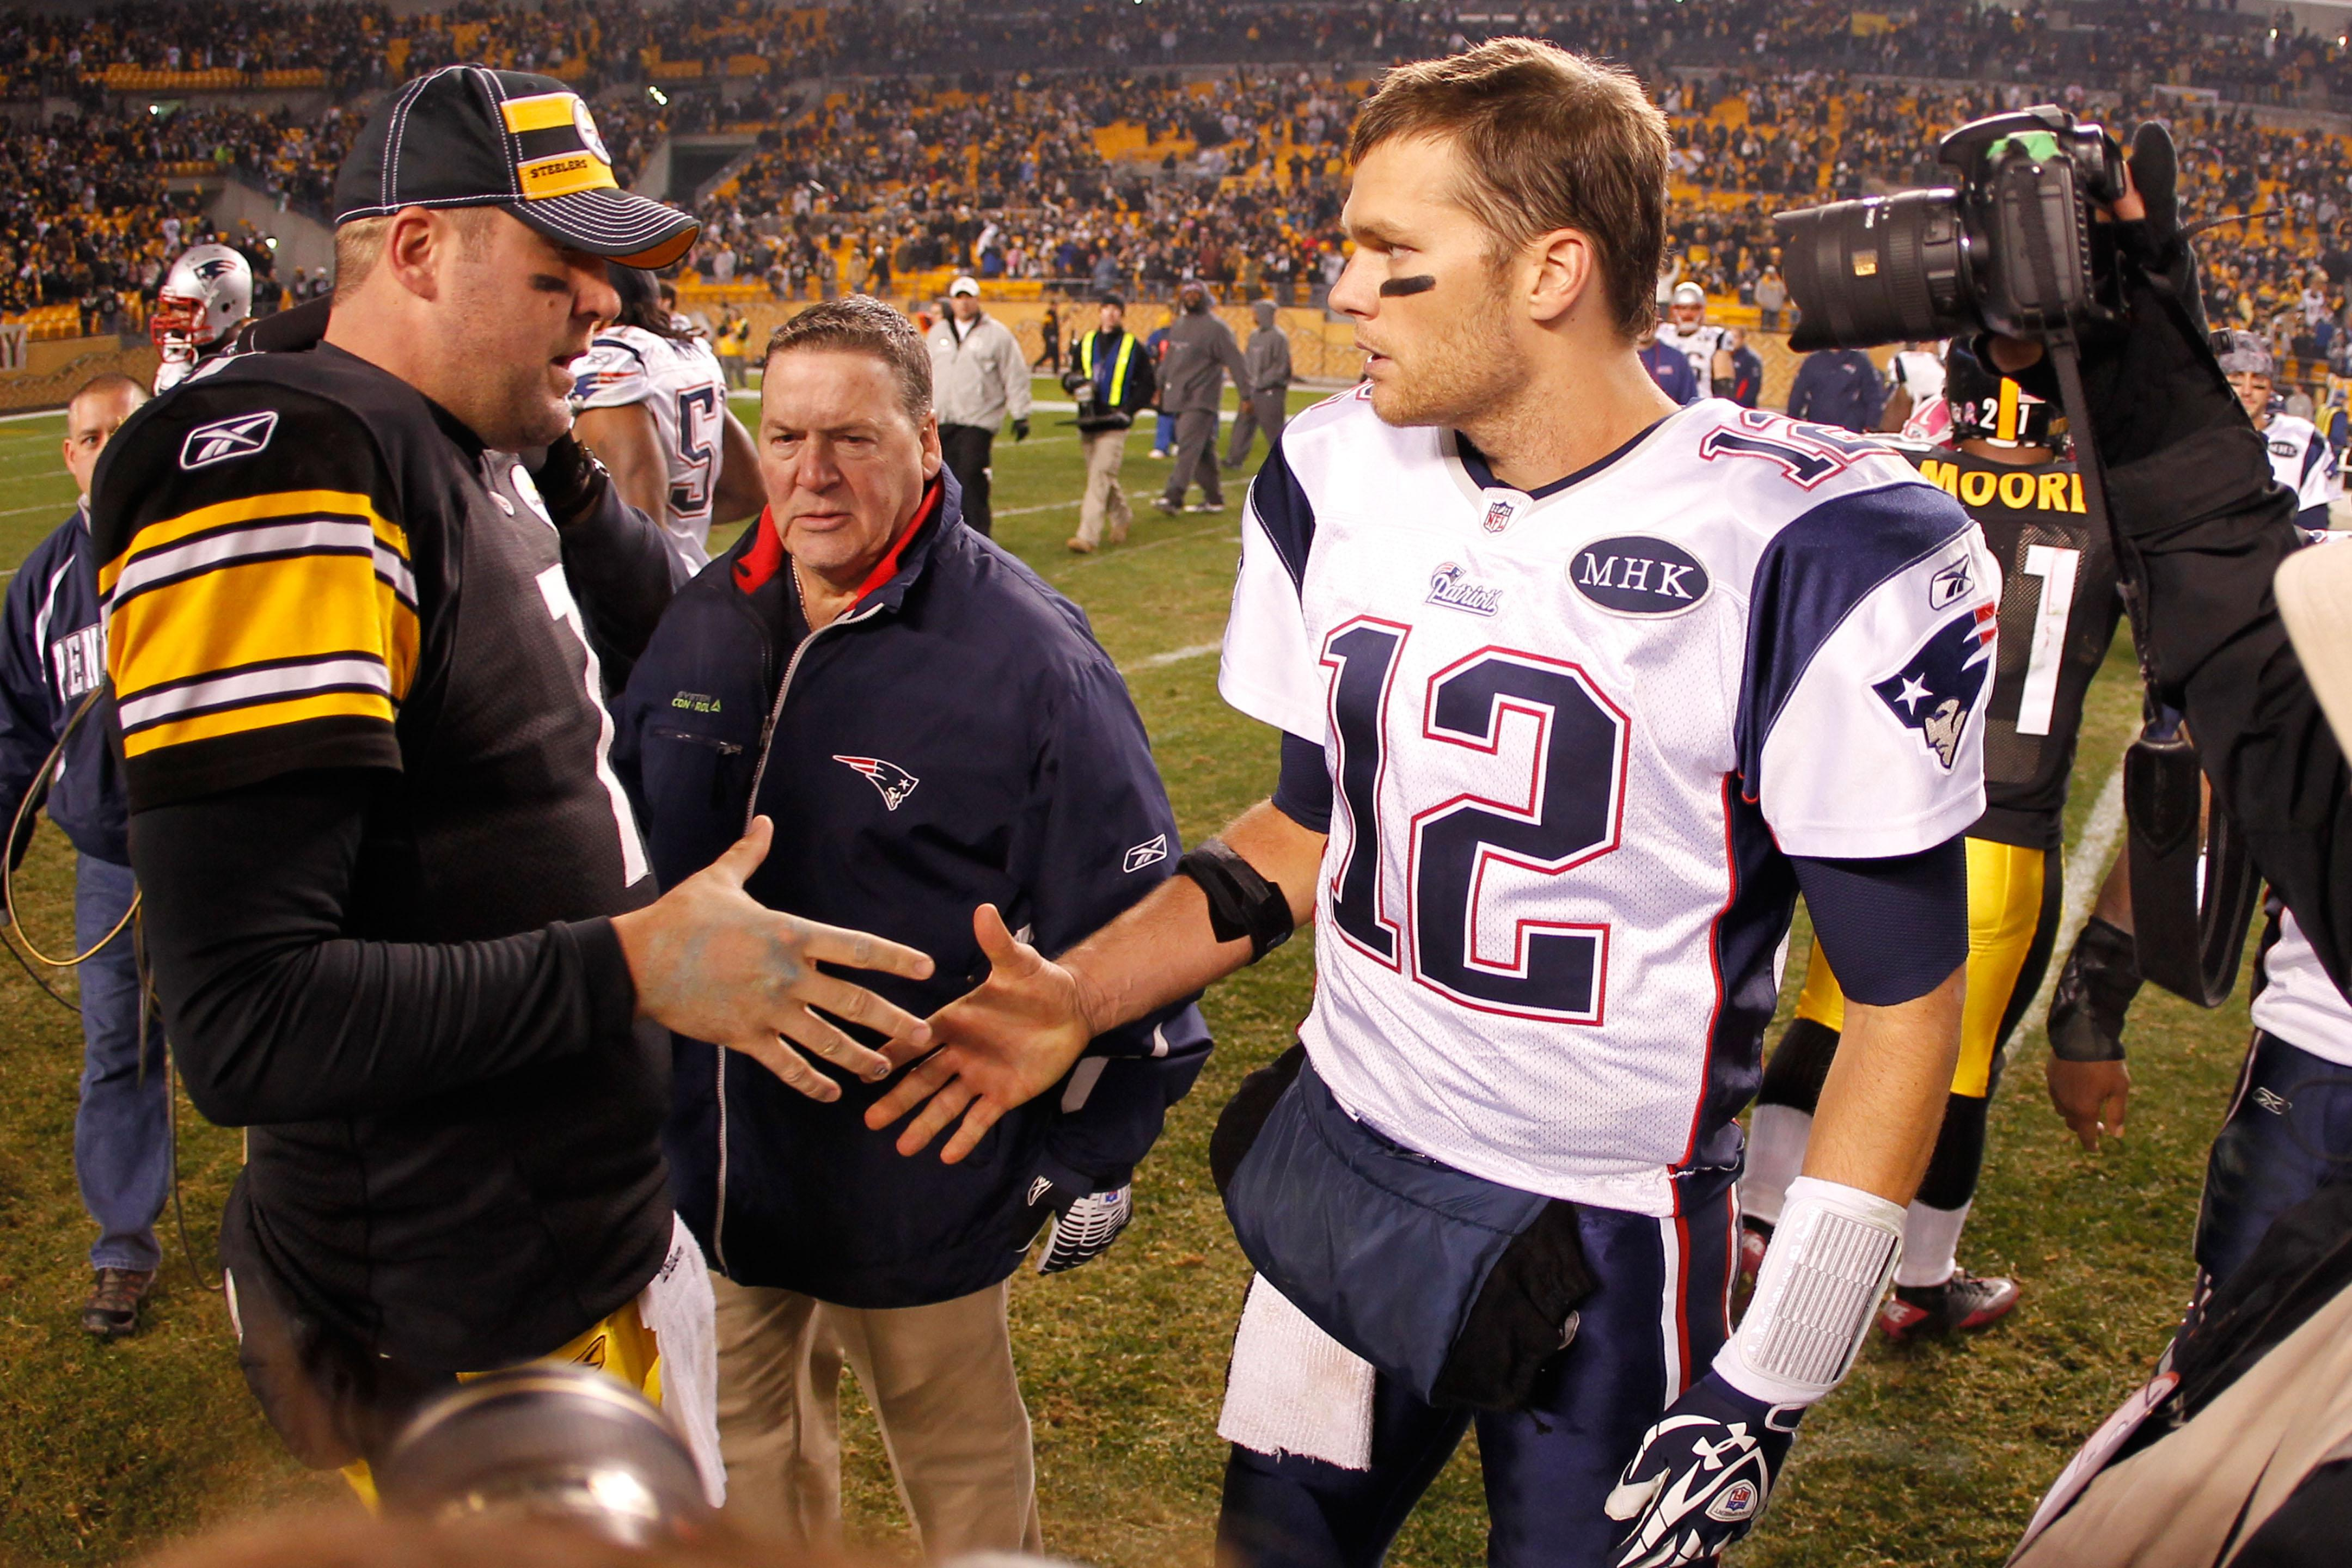 Ben Roethlisberger and Tom Brady.